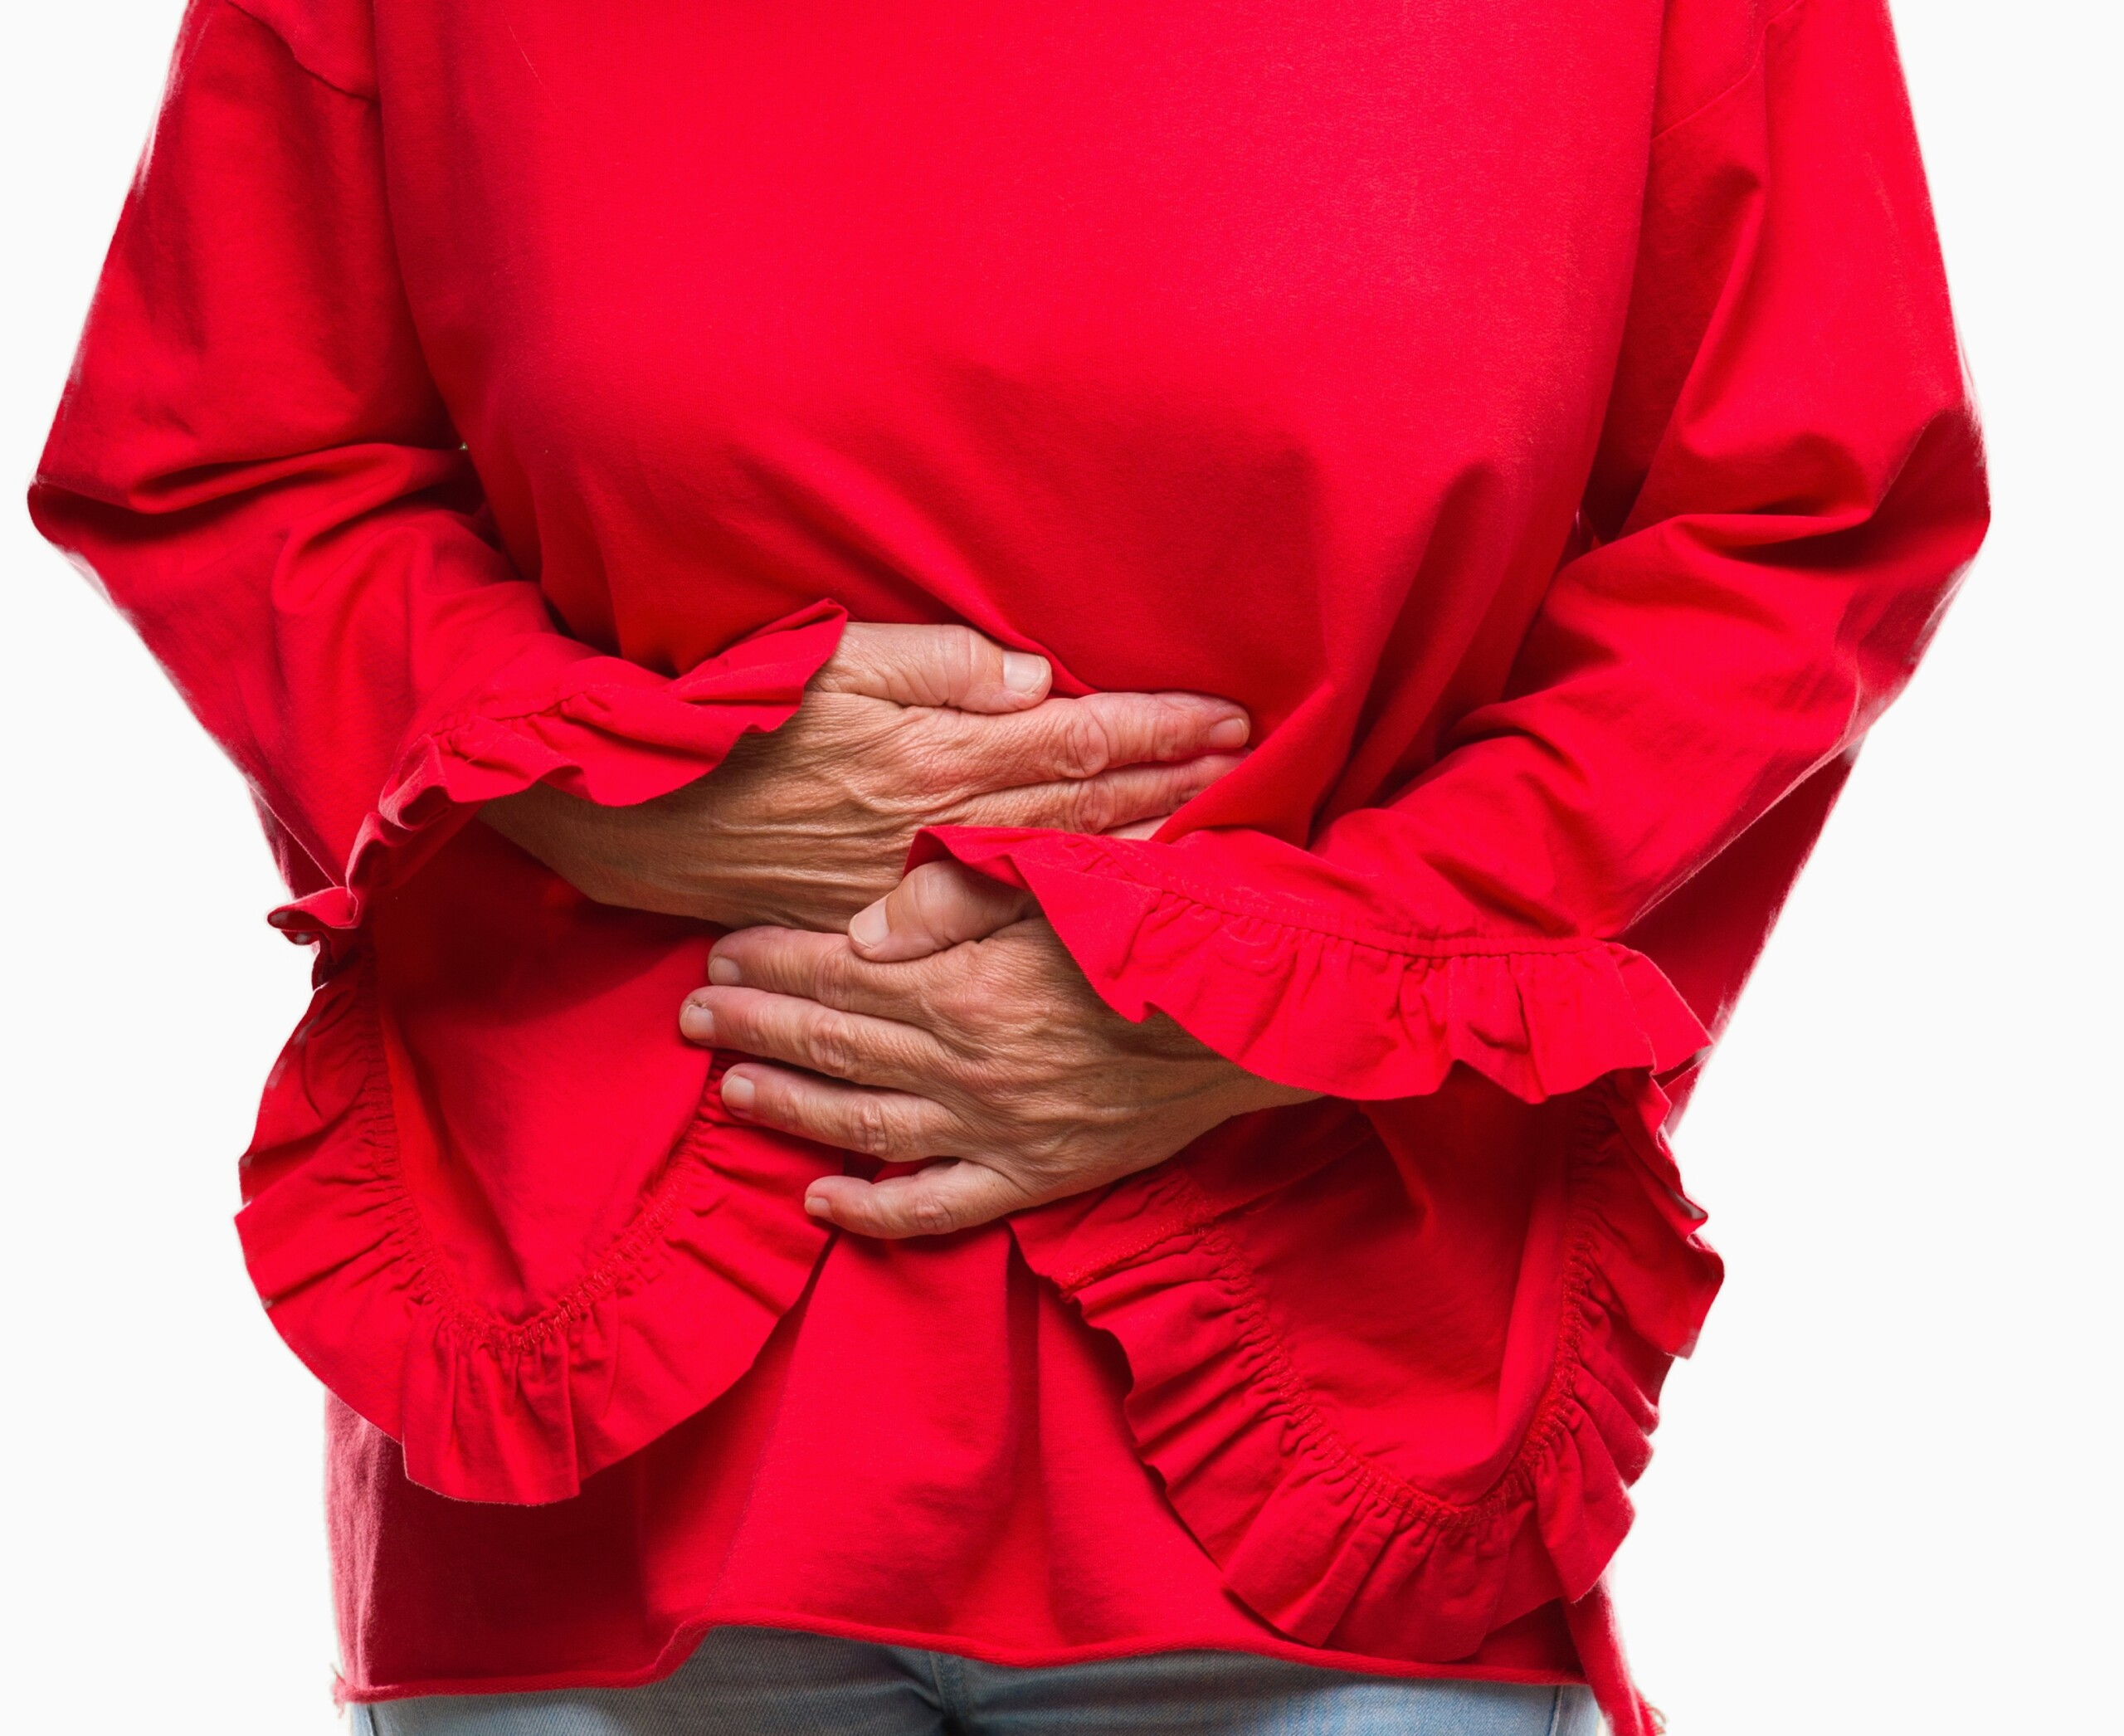 What Can Cause Abdominal and Pelvic Cramps After Menopause?